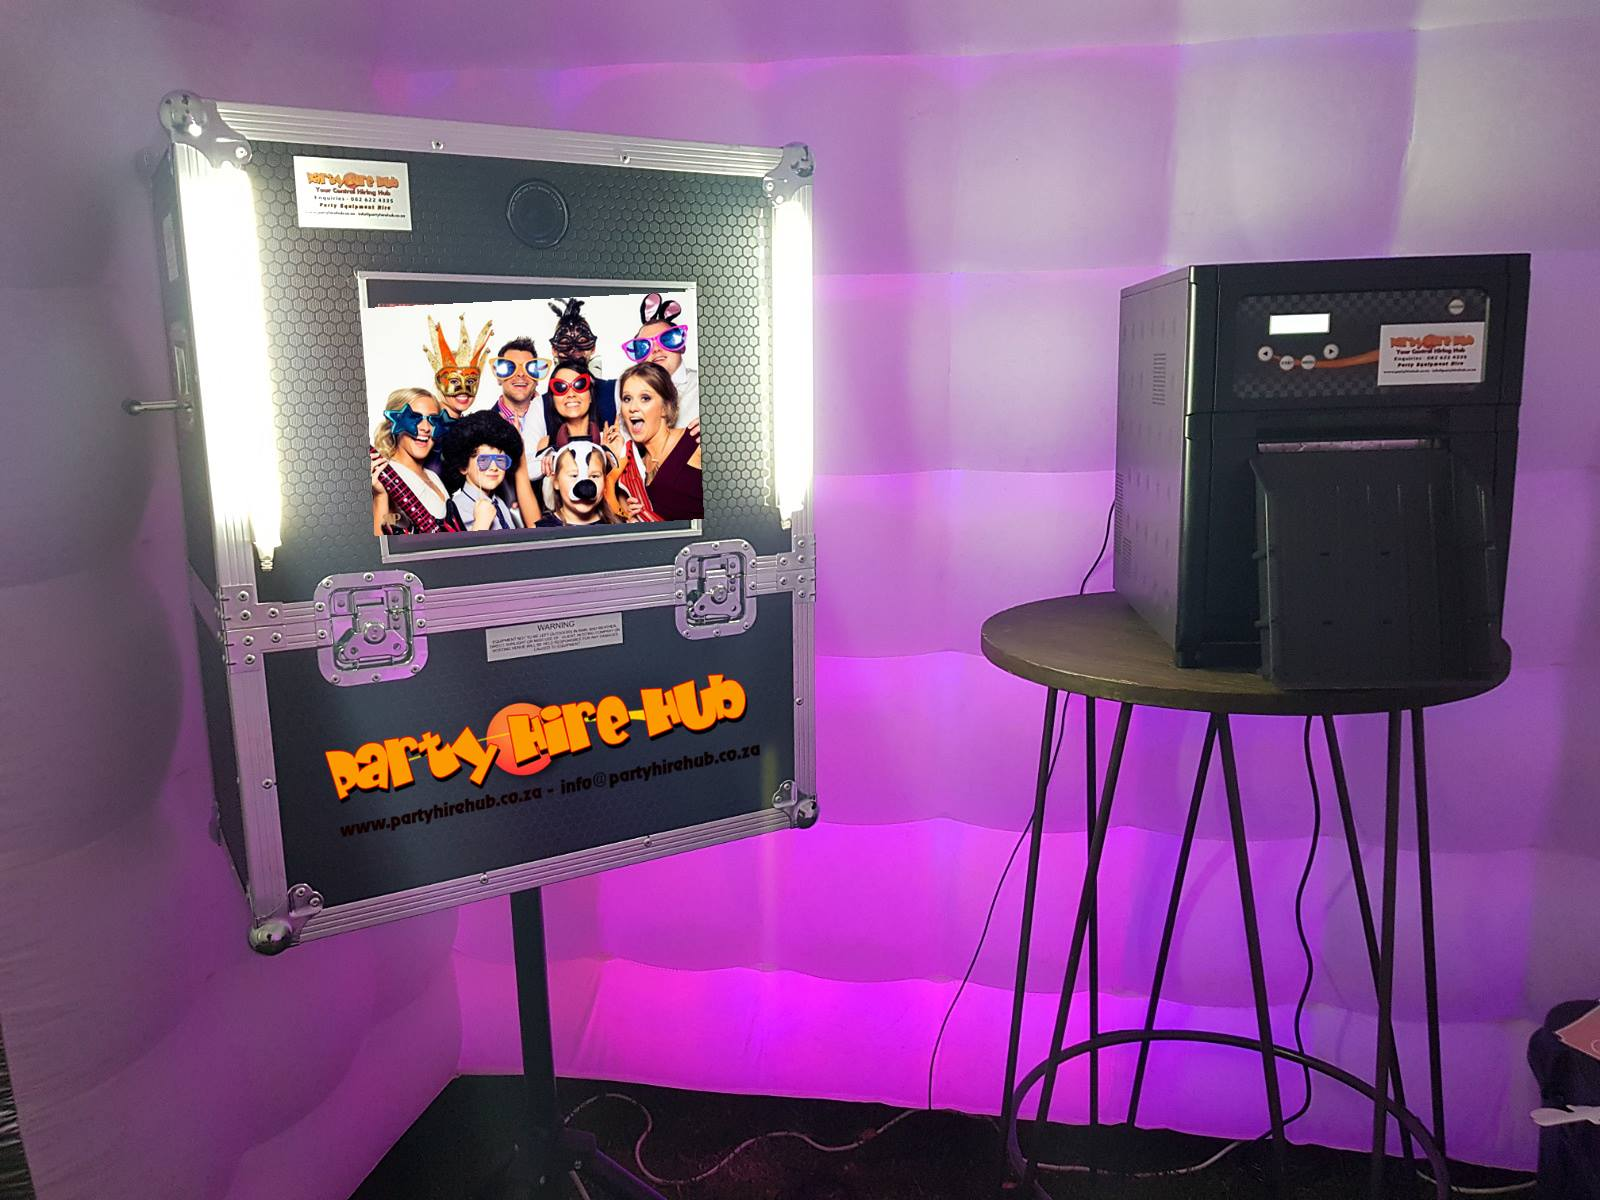 Party Hire Hub Inflatable Photo Booth Inside